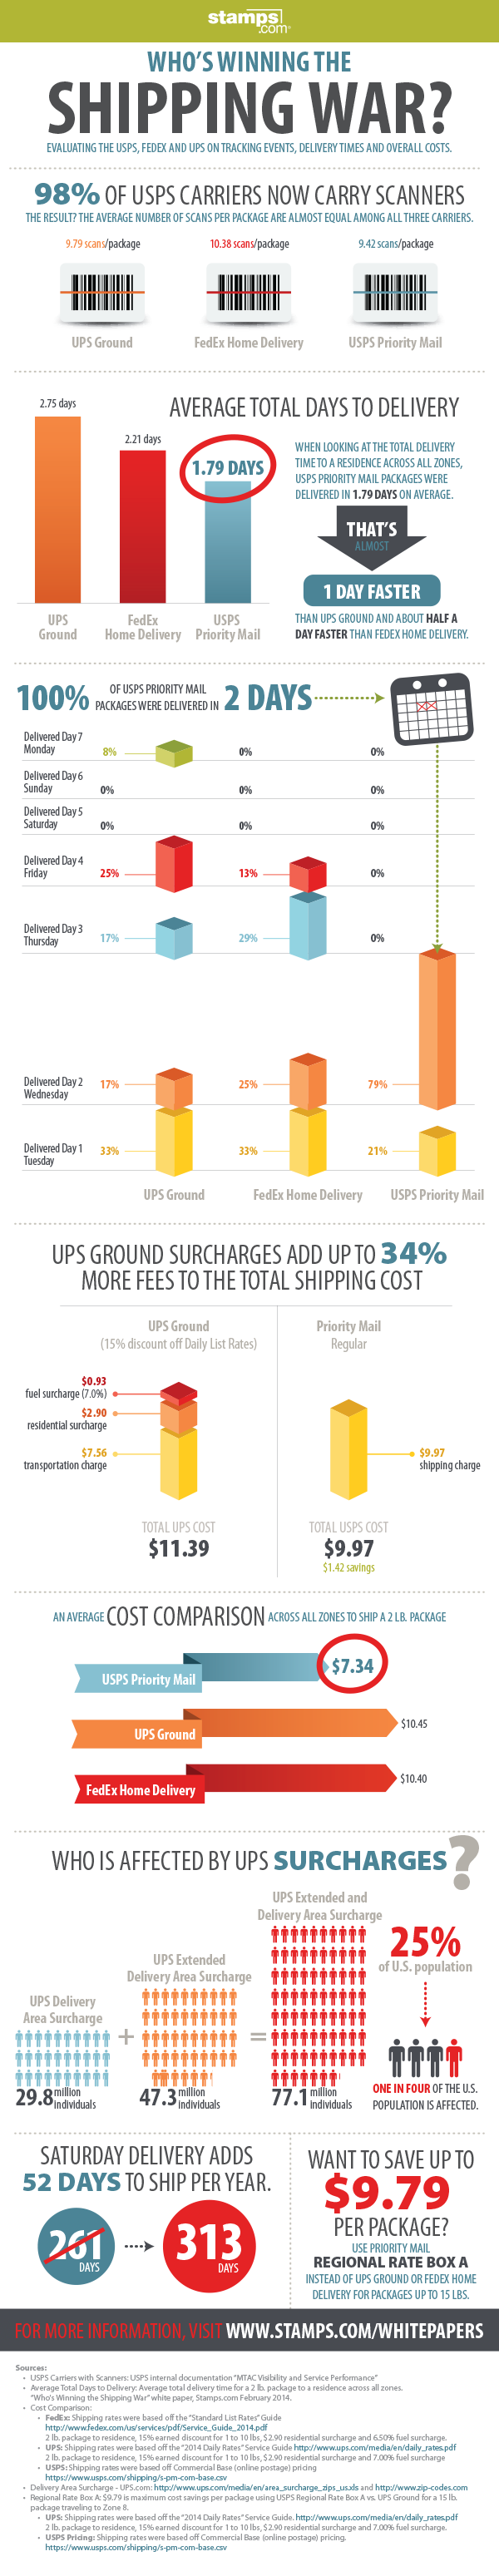 [Infographic] Shipping Carrier Comparison: UPS vs. FedEx vs. the USPS - An Infographic from Stamps.com Blog